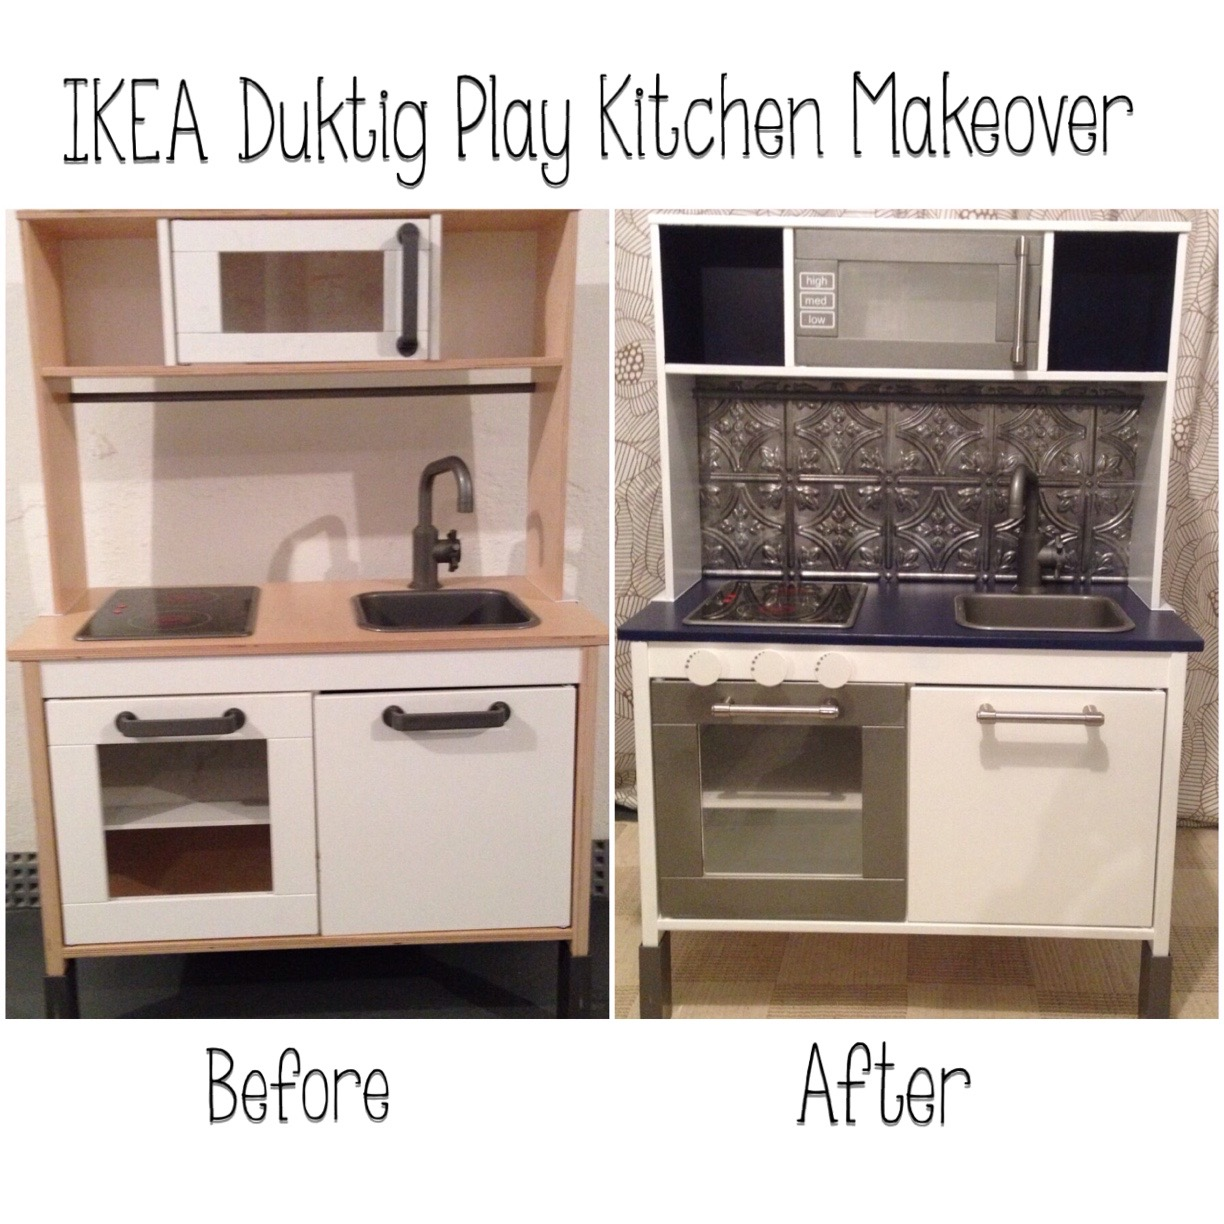 Wooden Play Kitchen Ikea - Interior Design